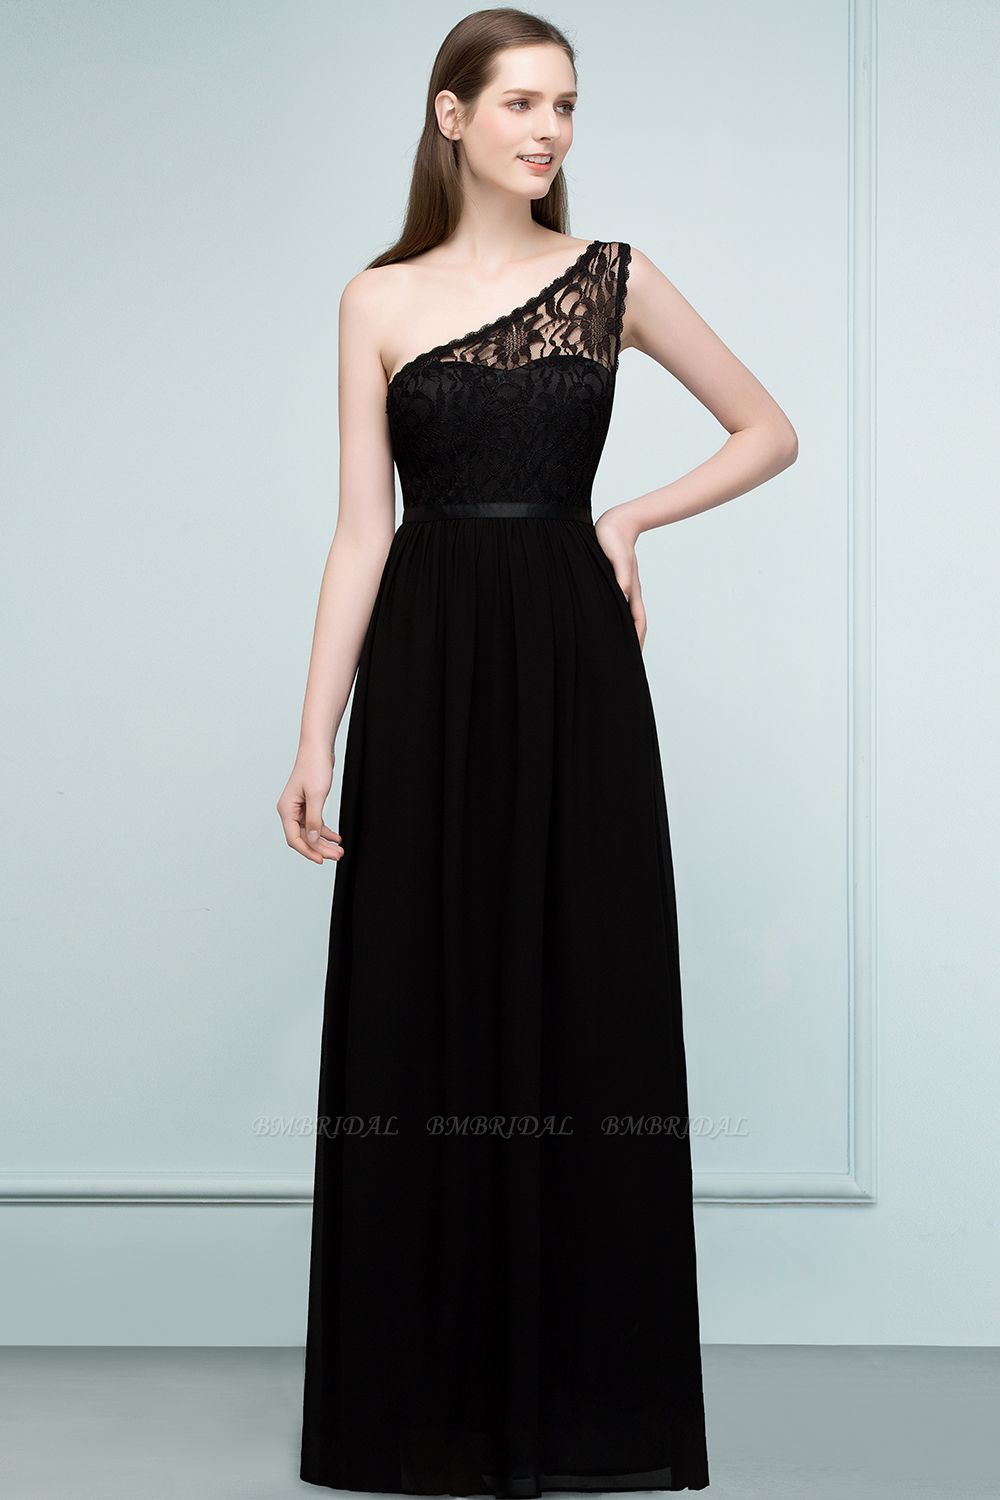 Chic One Shoulder Black Lace Long Bridesmaid Dresses Online In Stock